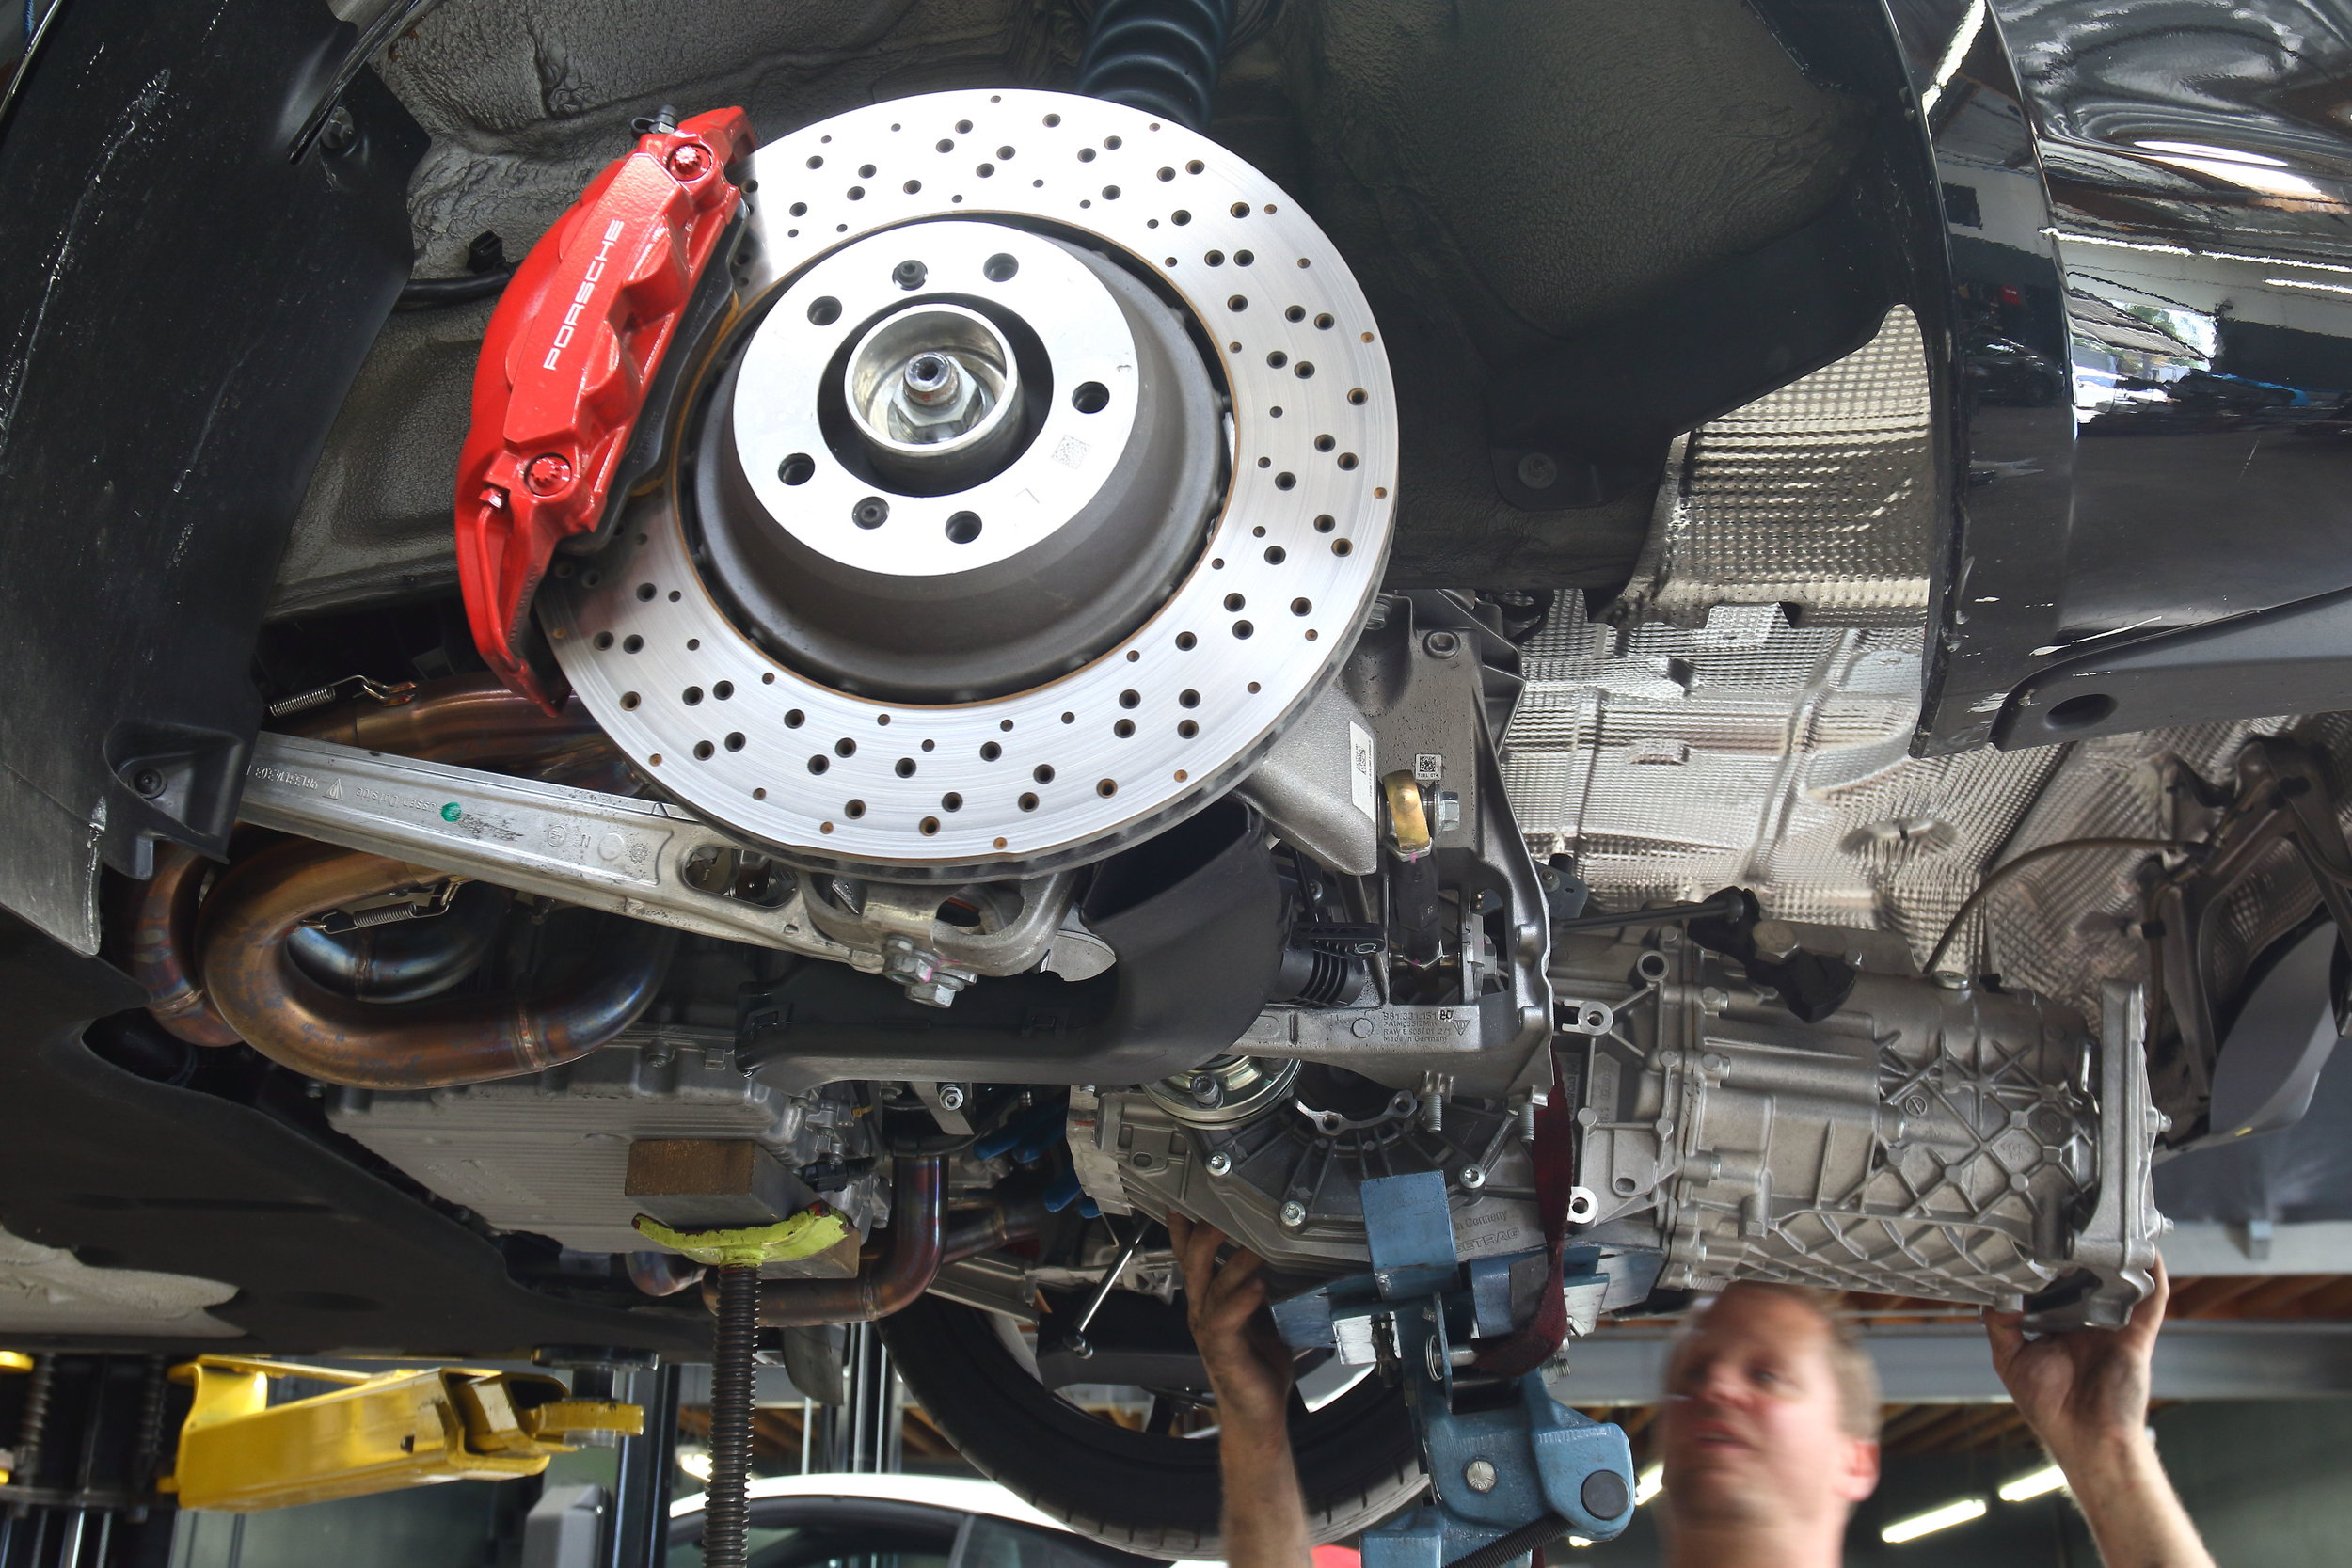 Gearbox Removed to Access Clutch & Flywheel